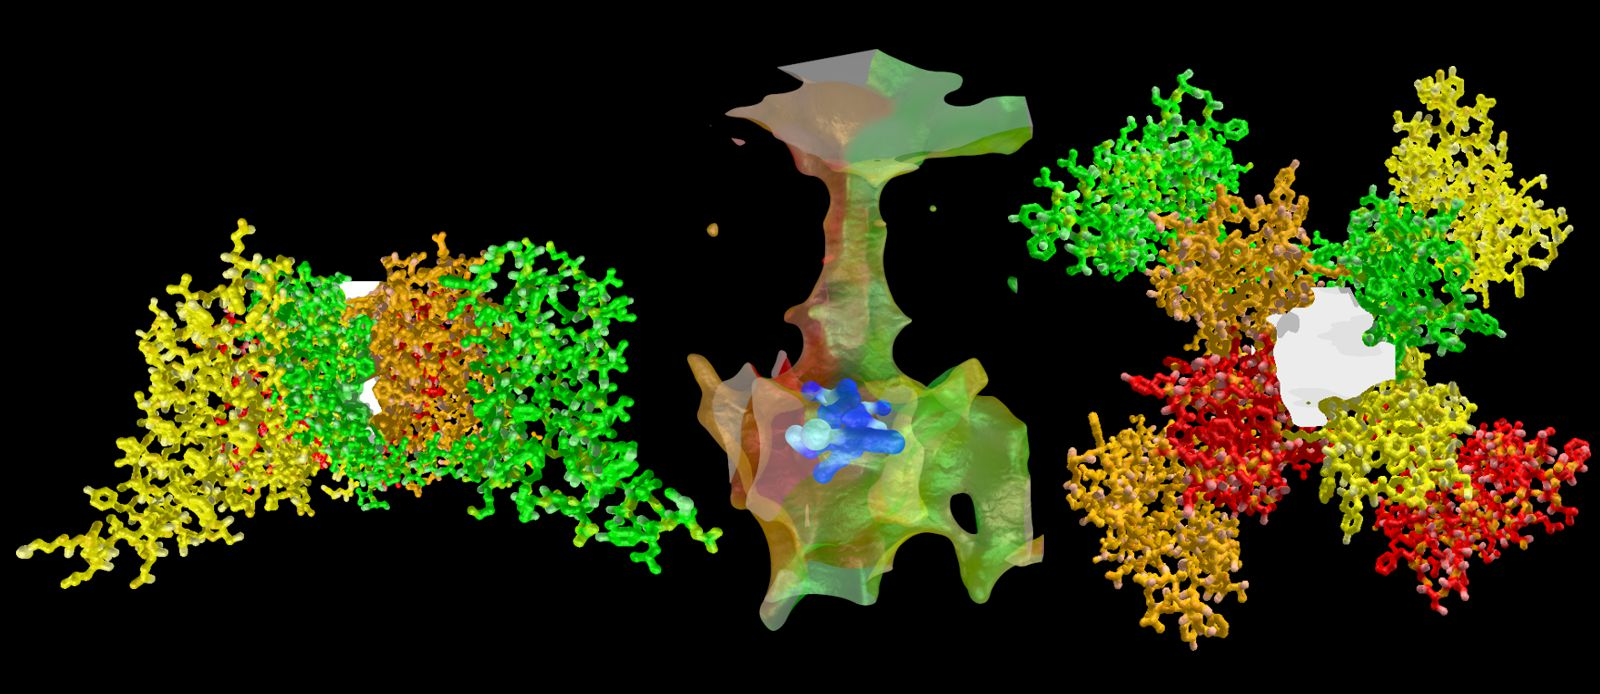 Ca2+ channels and their inhibitors - Scivit News